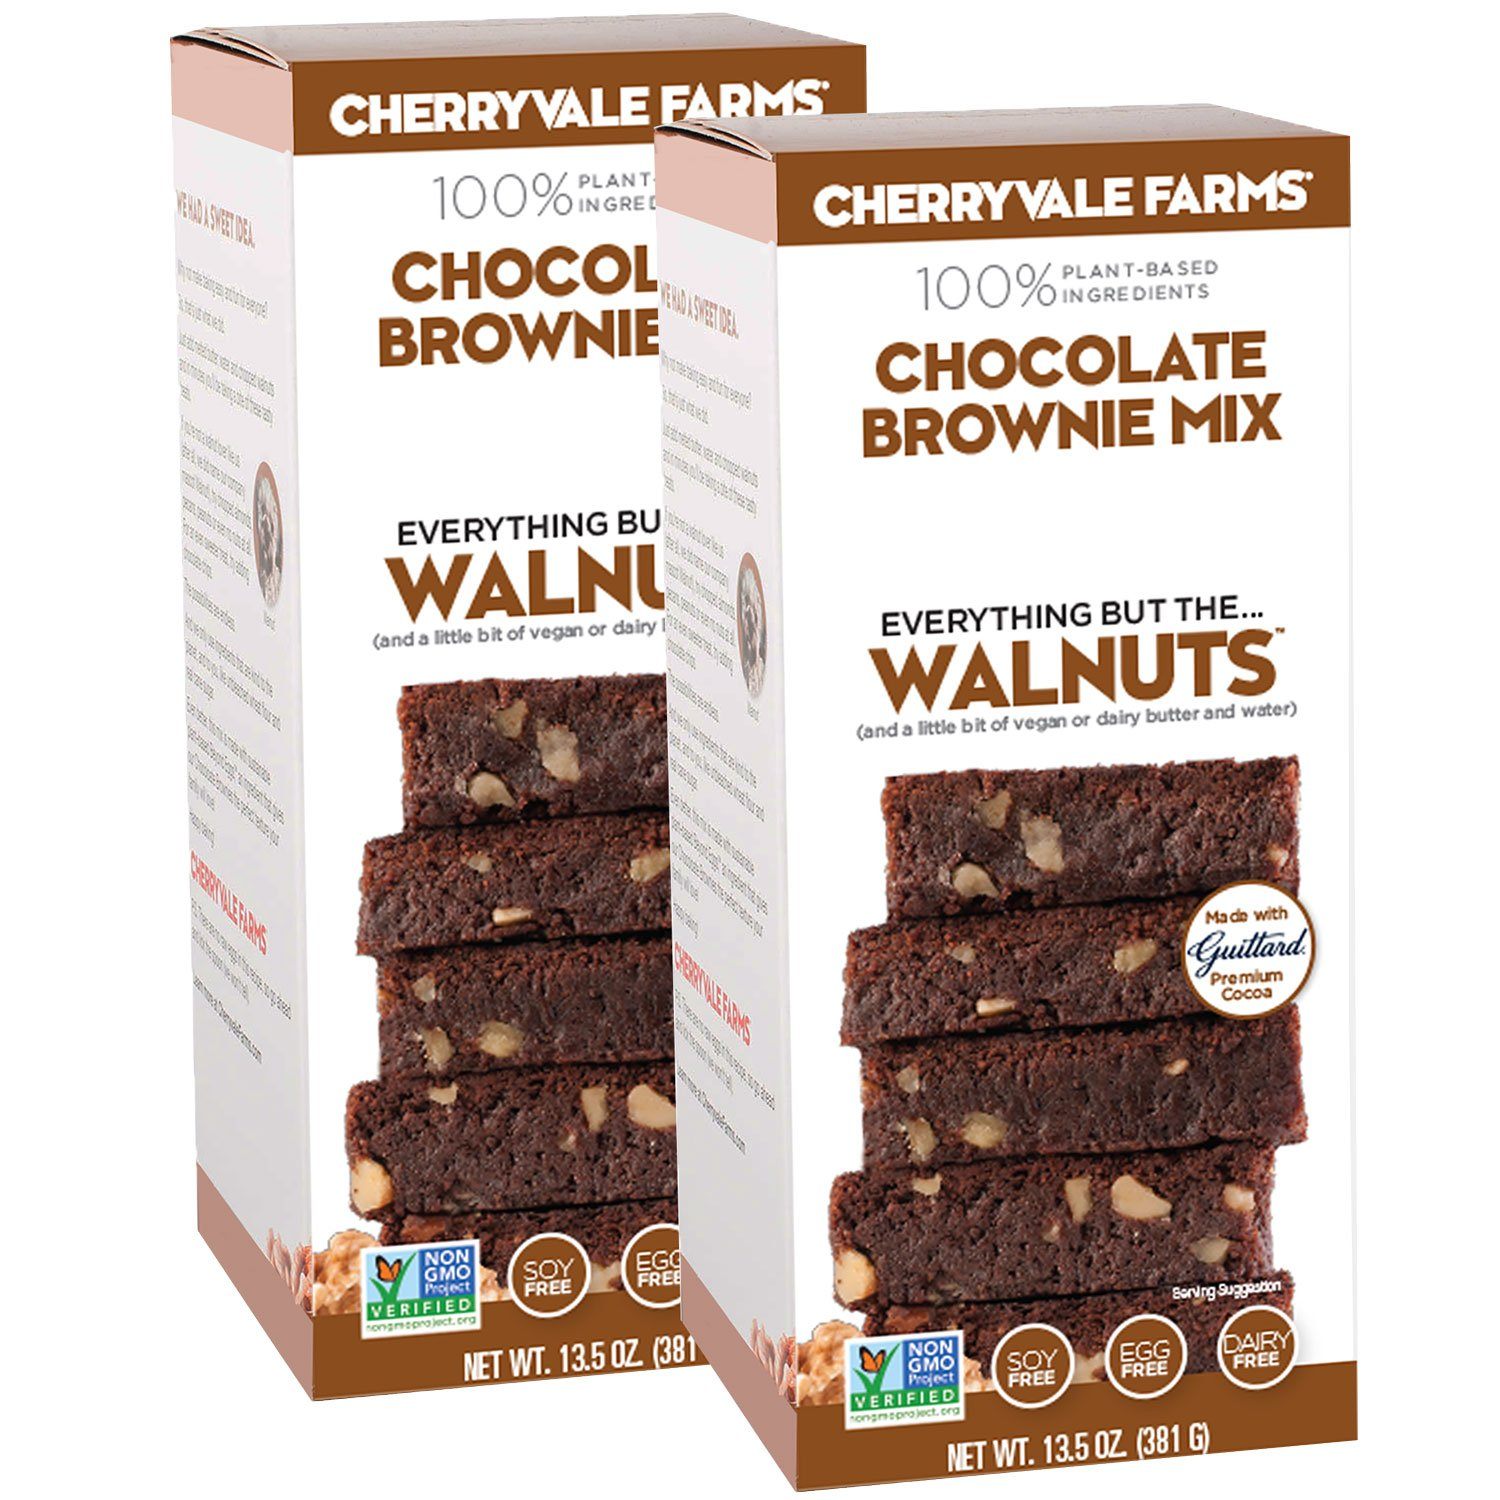 Cherryvale Farms, Chocolate Brownie Baking Mix, Everything But The Walnuts, Add Fresh Produce, Tastes Homemade, Non-GMO, Vegan, 100% Plant-Based, 13.5 oz (pack of 2)